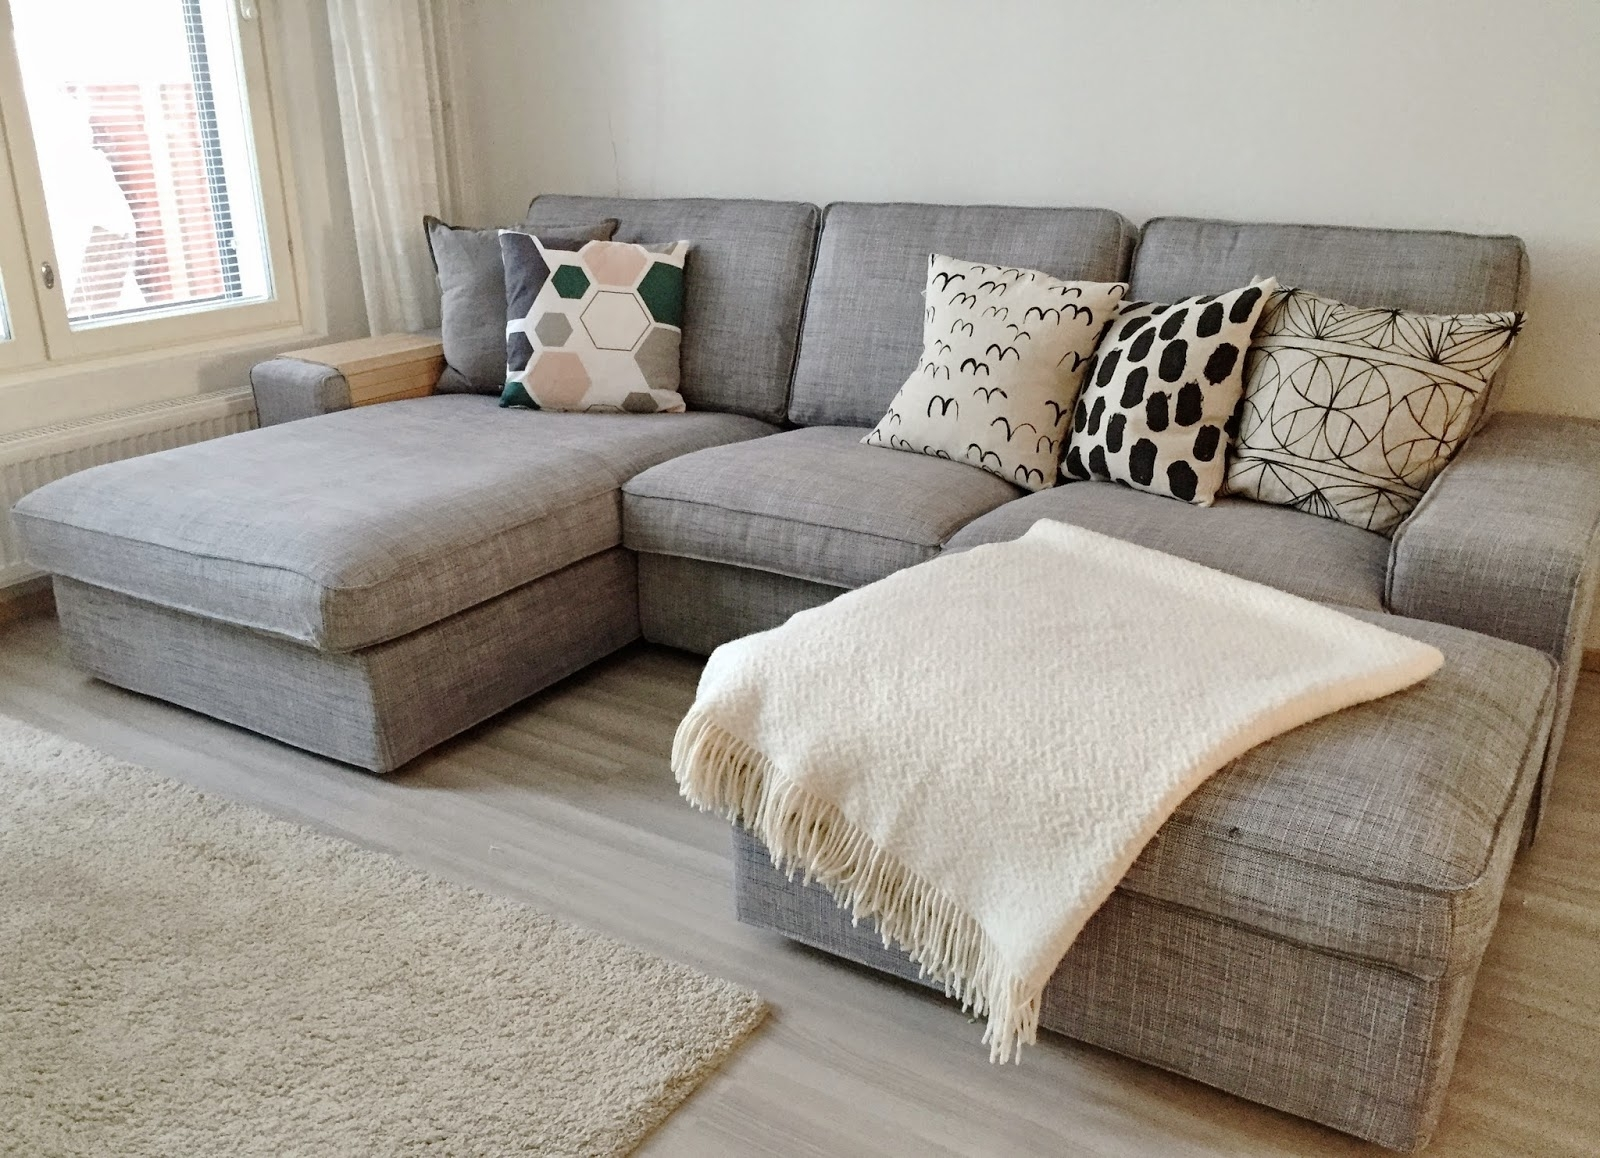 Apartment Sectional Sofas With Chaise Intended For Favorite New Unbelievable Apartment Sectional Sofa With Cha # (View 5 of 20)